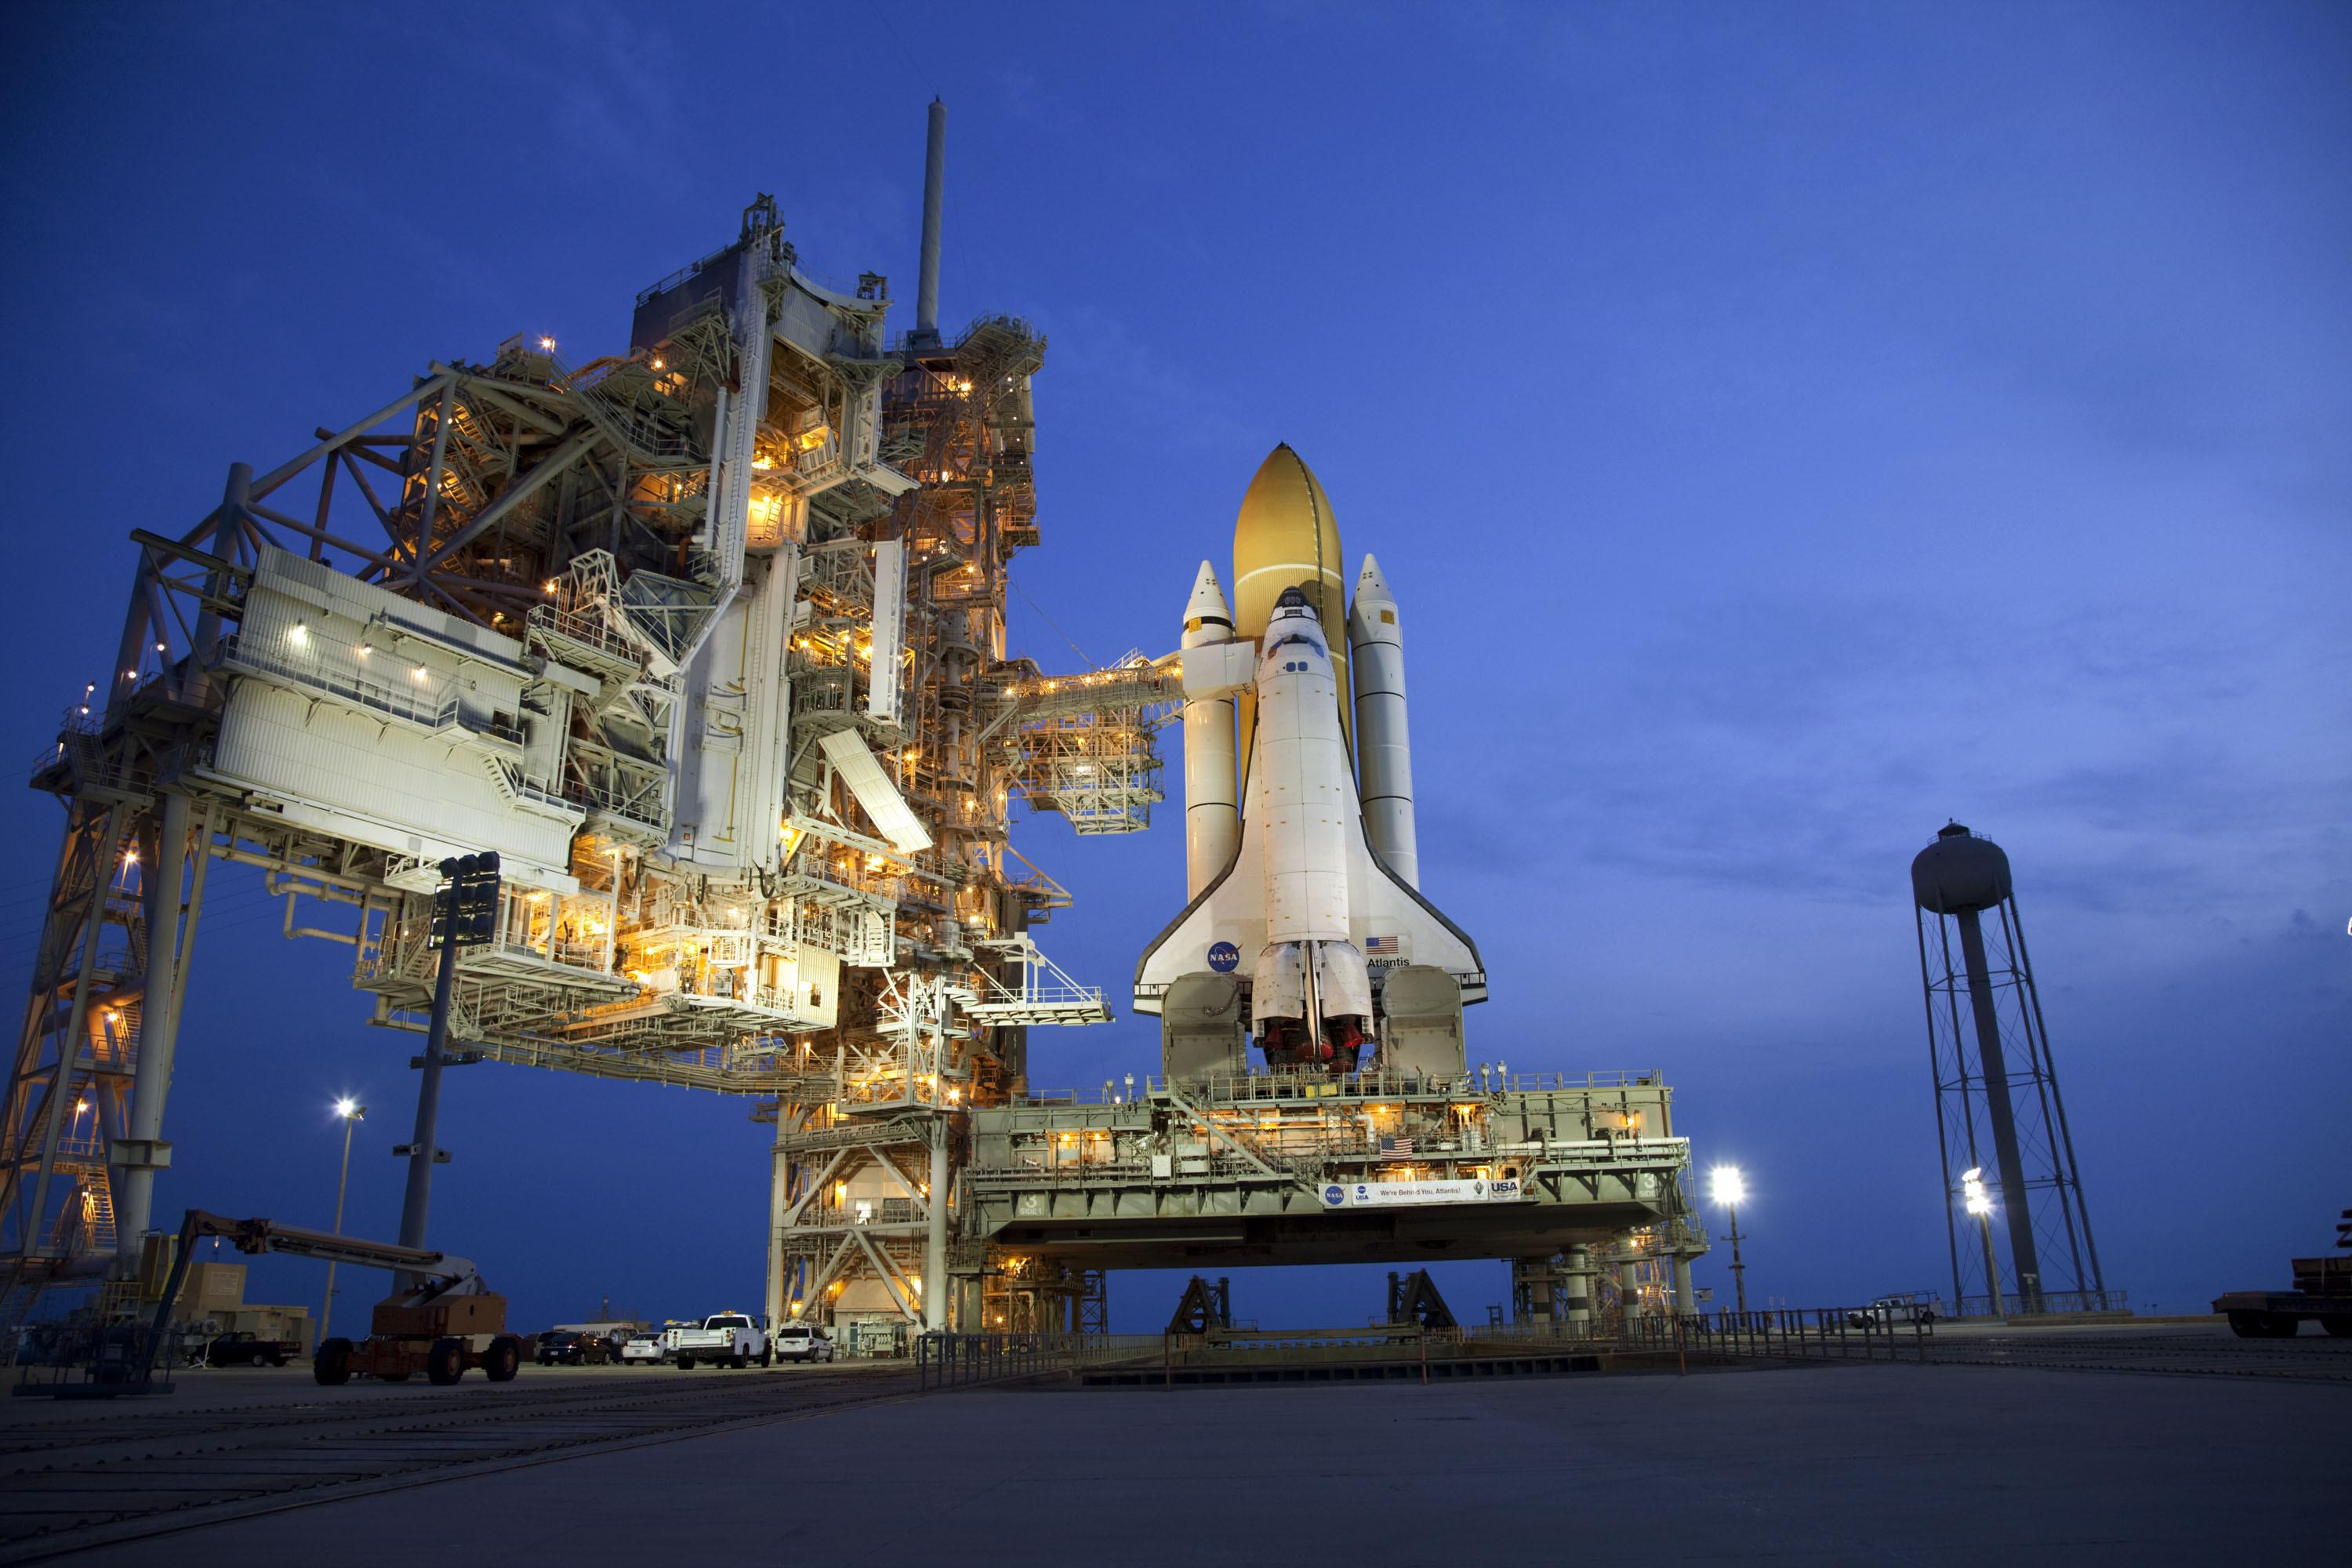 NASA: Last Space Shuttle Mission Will Launch July 8